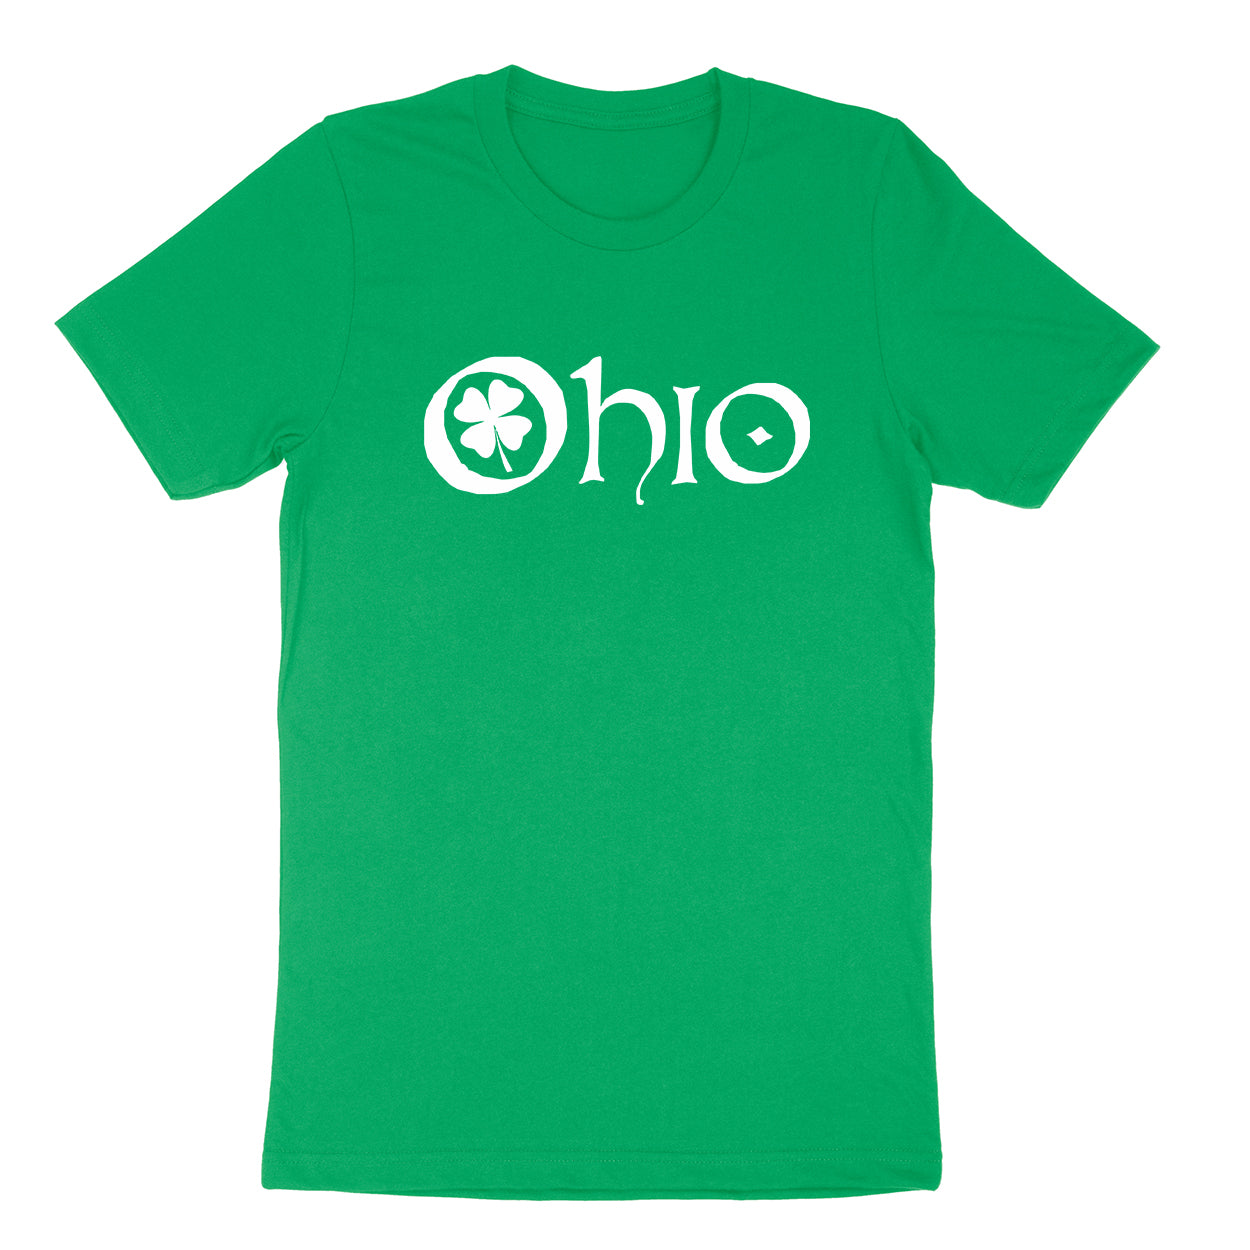 Ohio Clover Men's T-shirt - Clothe Ohio - Soft Ohio Shirts